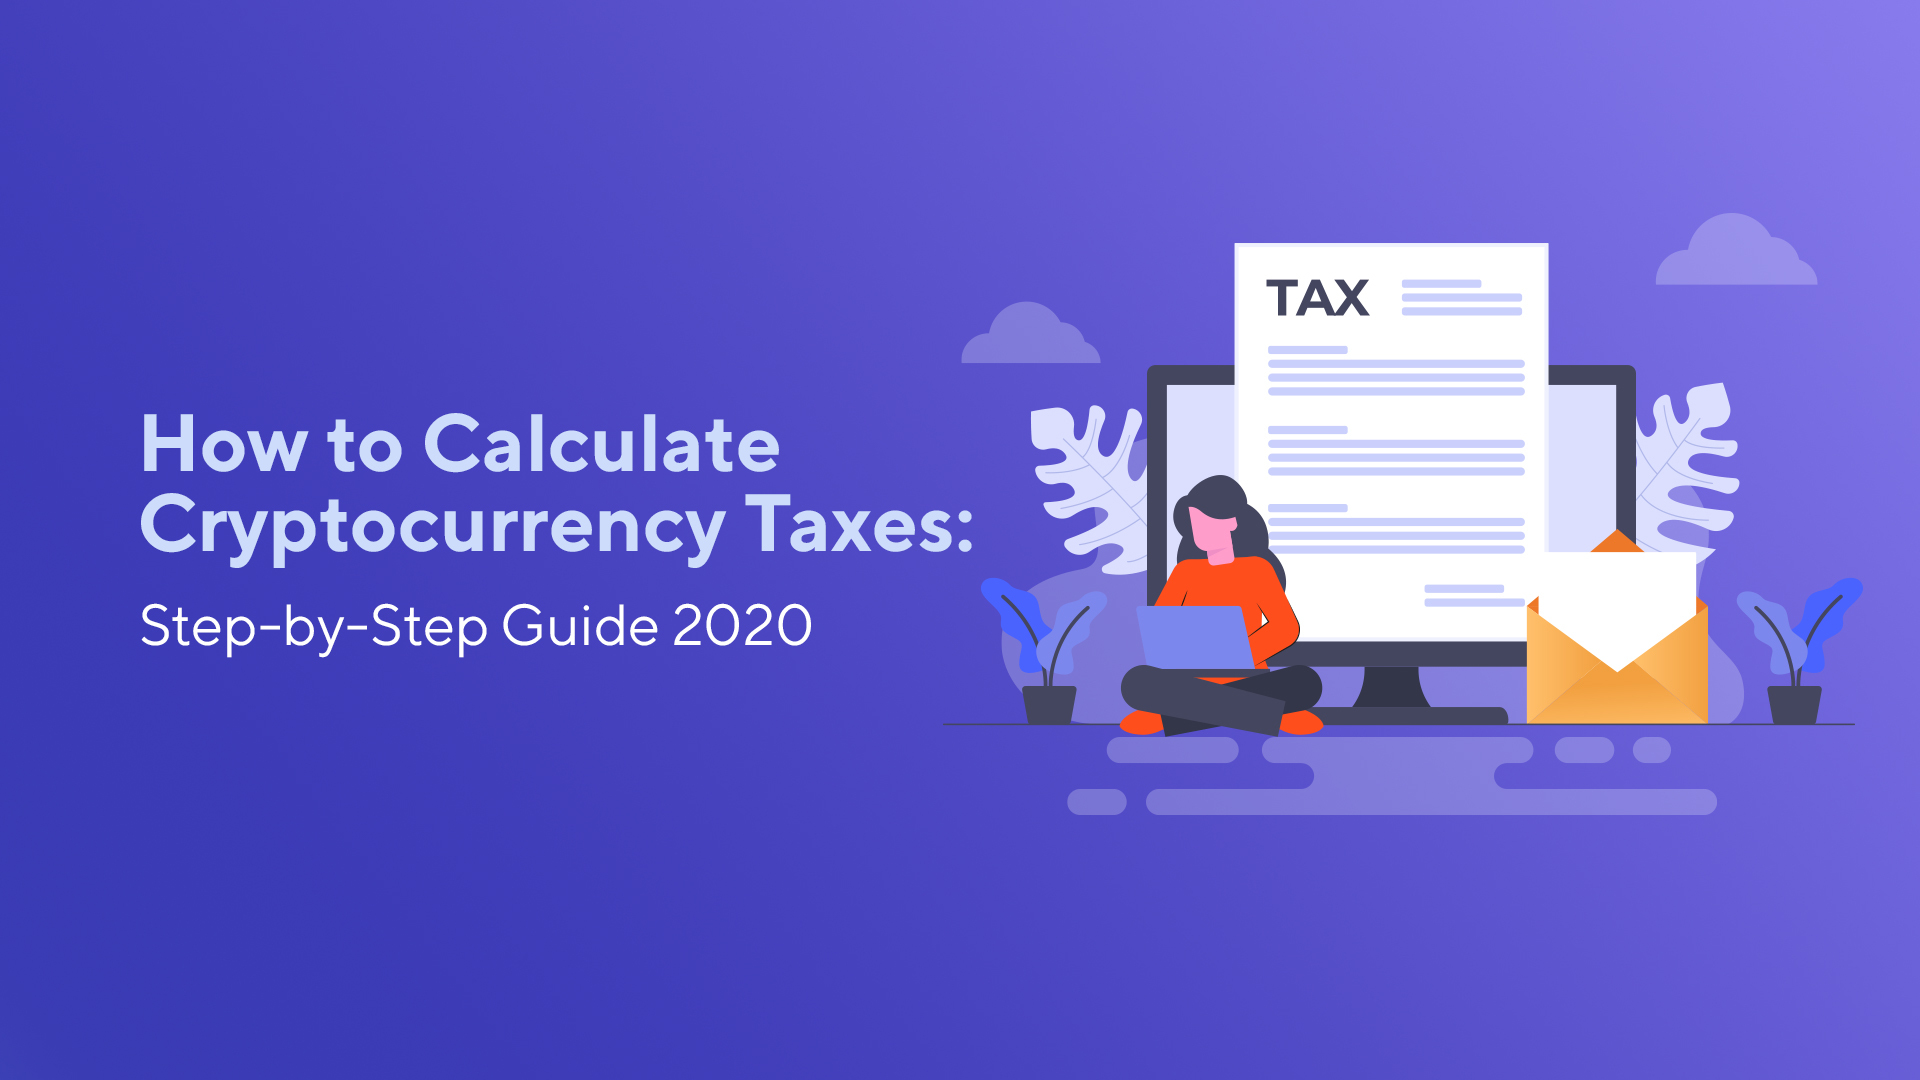 How to Calculate Cryptocurrency Taxes: Step-by-Step Guide 2020